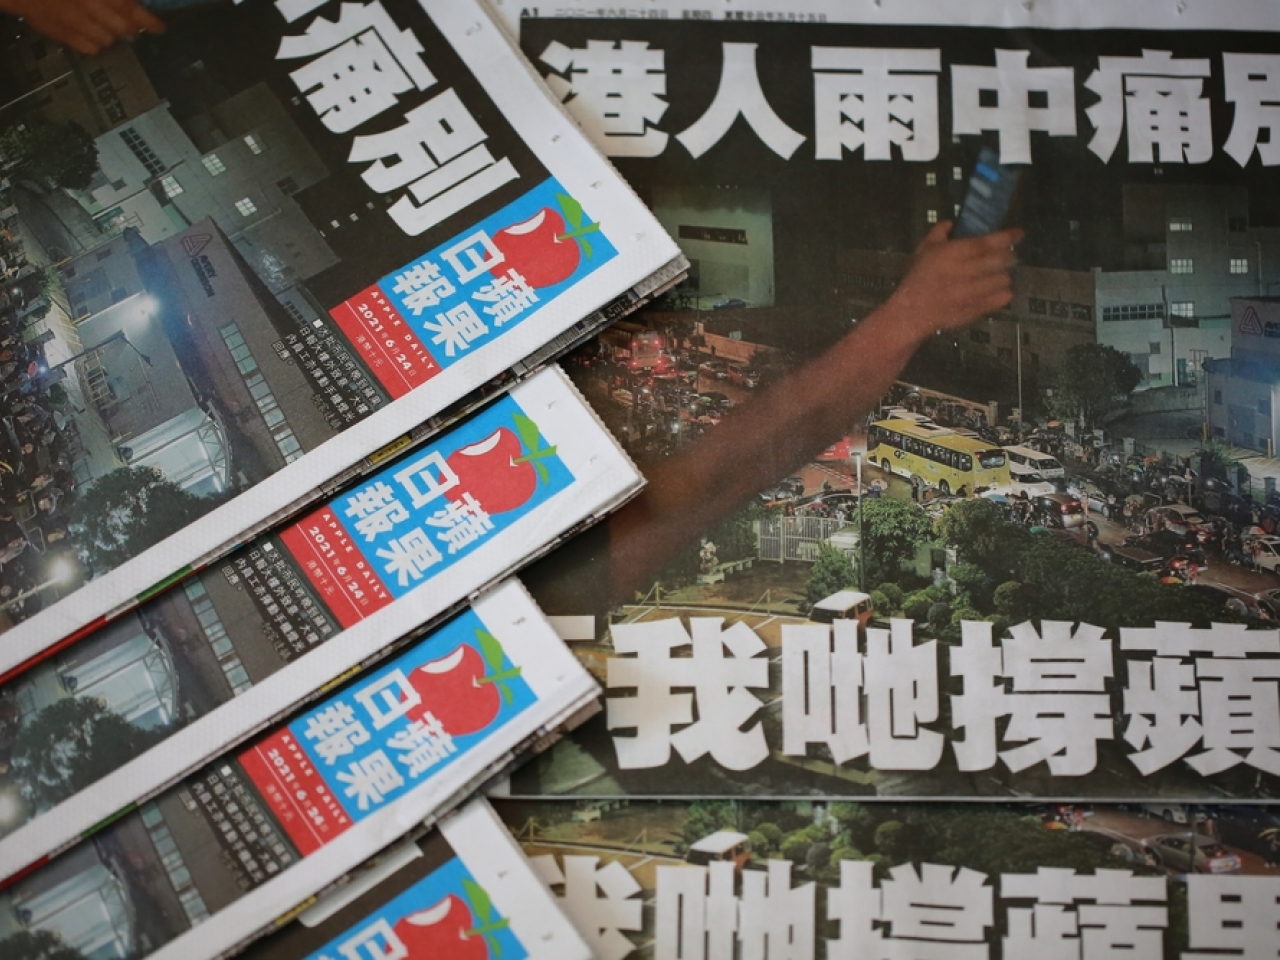 Reporters Without Borders accused the CE of 'relentlessly' targeting symbols of press freedom in Hong Kong, citing the freezing of Apple Daily's financial assets and forcing it to shut down. File image:: Shutterstock